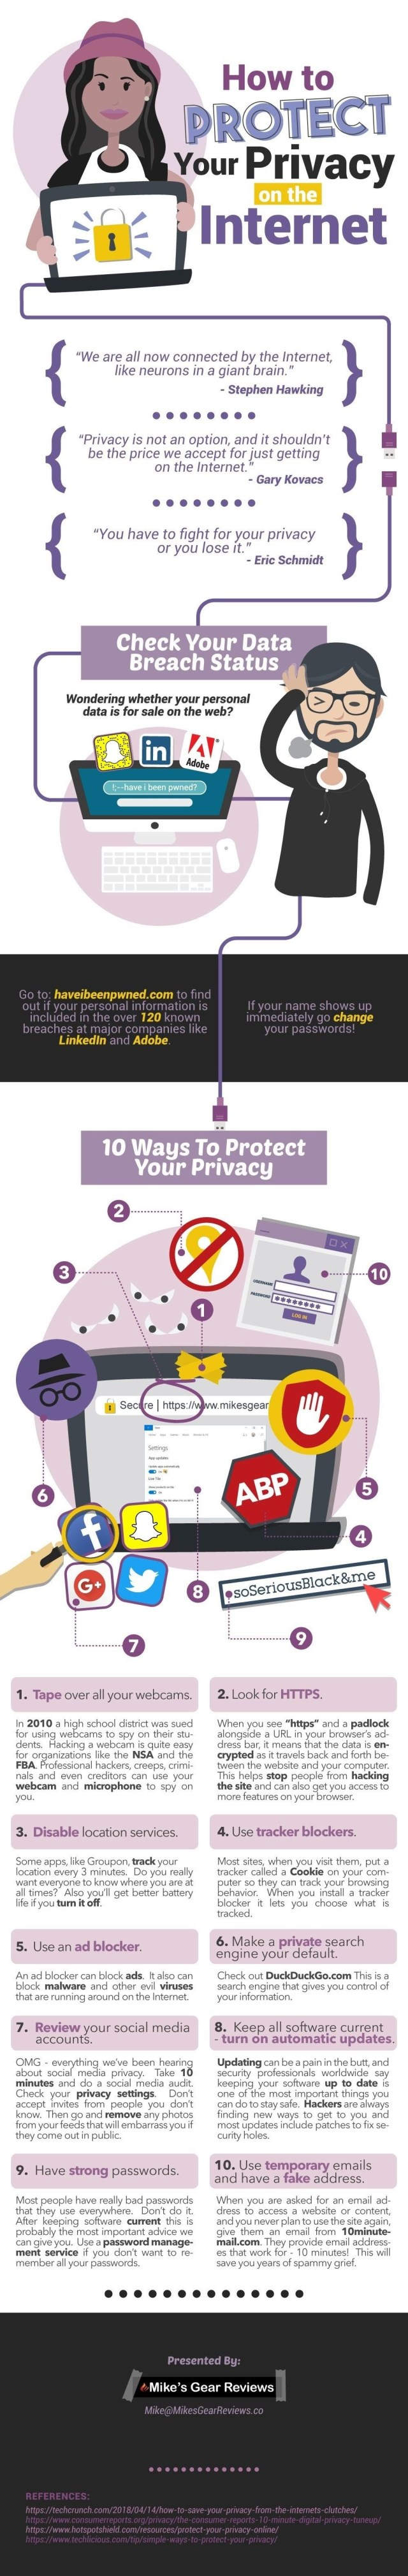 Protect Privacy info